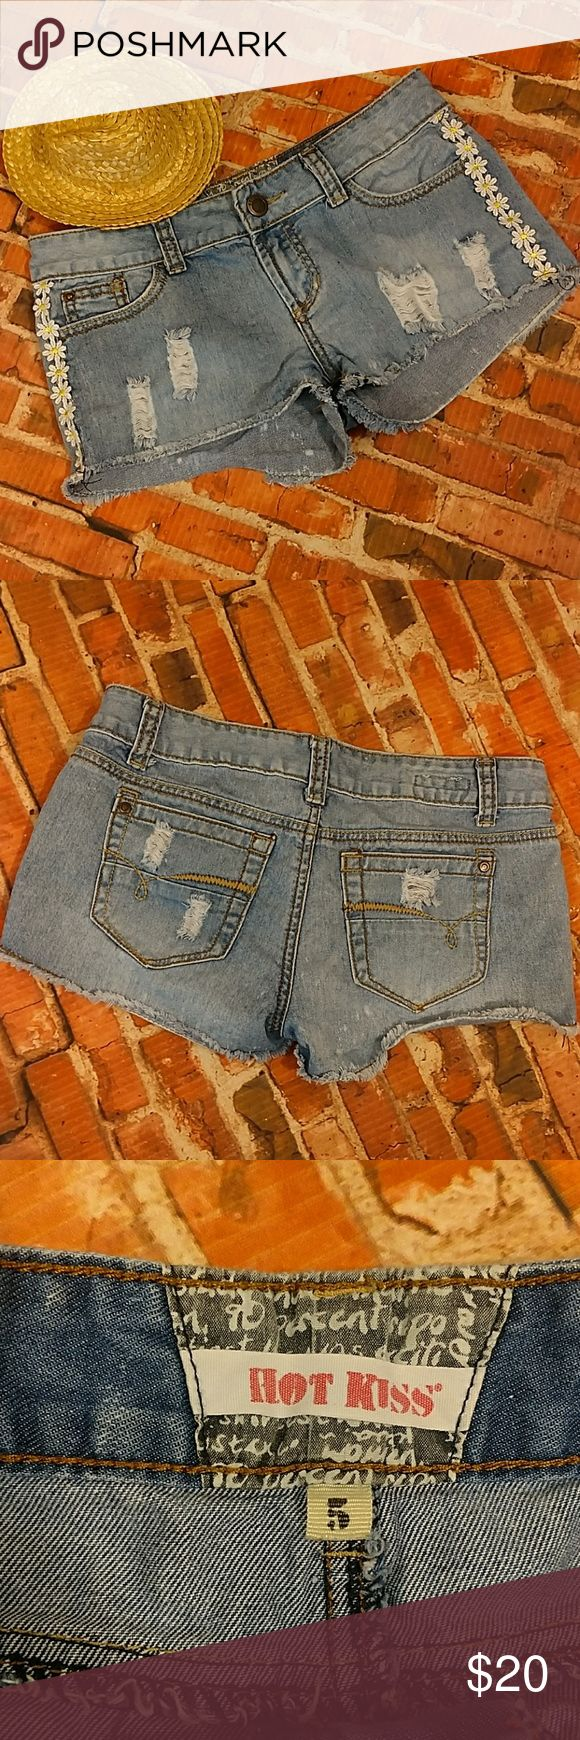 "Fun Distressed Denim Jean Shorts 5 Adorable cut off distressed denim jean shorts with sunflower trimming on each side. Five-pocket styling. Button and zip closure. Size 5.  29"" waist, 7.5"" rise, 2"" inseam. Light Blue Shorts Jean Shorts"